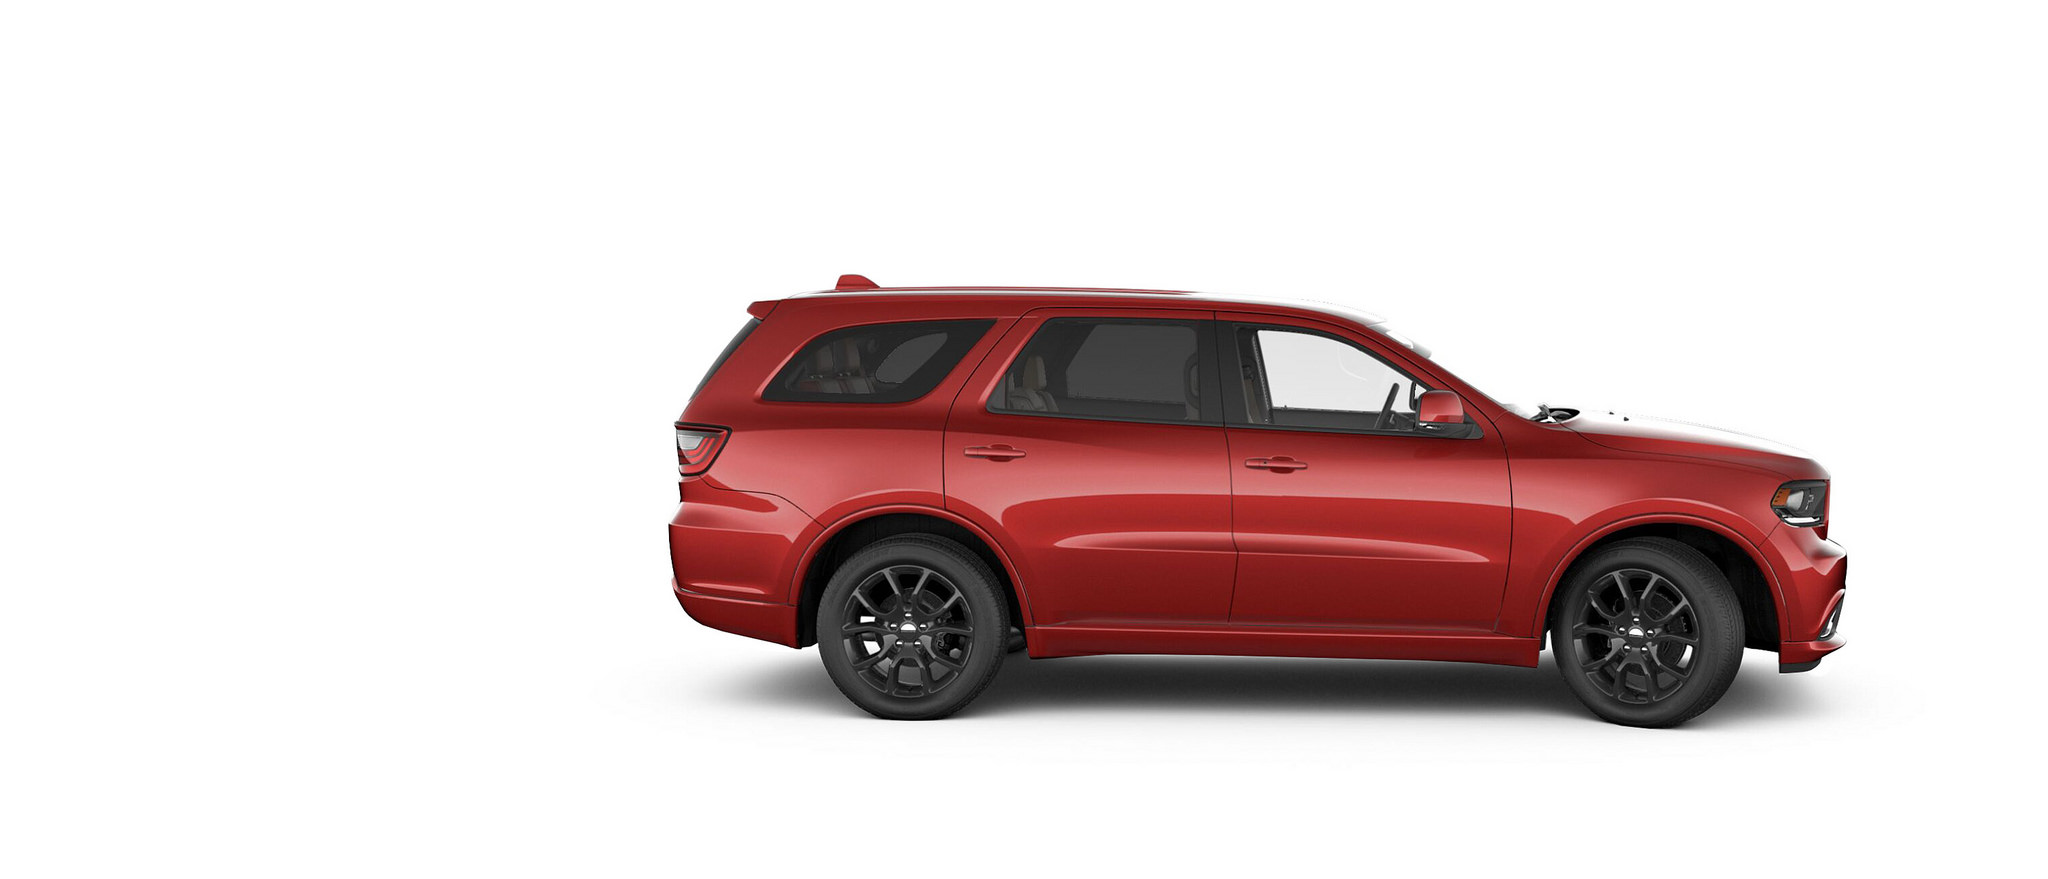 2018 dodge durango r t makes list of fastest cars for the money in 2018 the news wheel. Black Bedroom Furniture Sets. Home Design Ideas